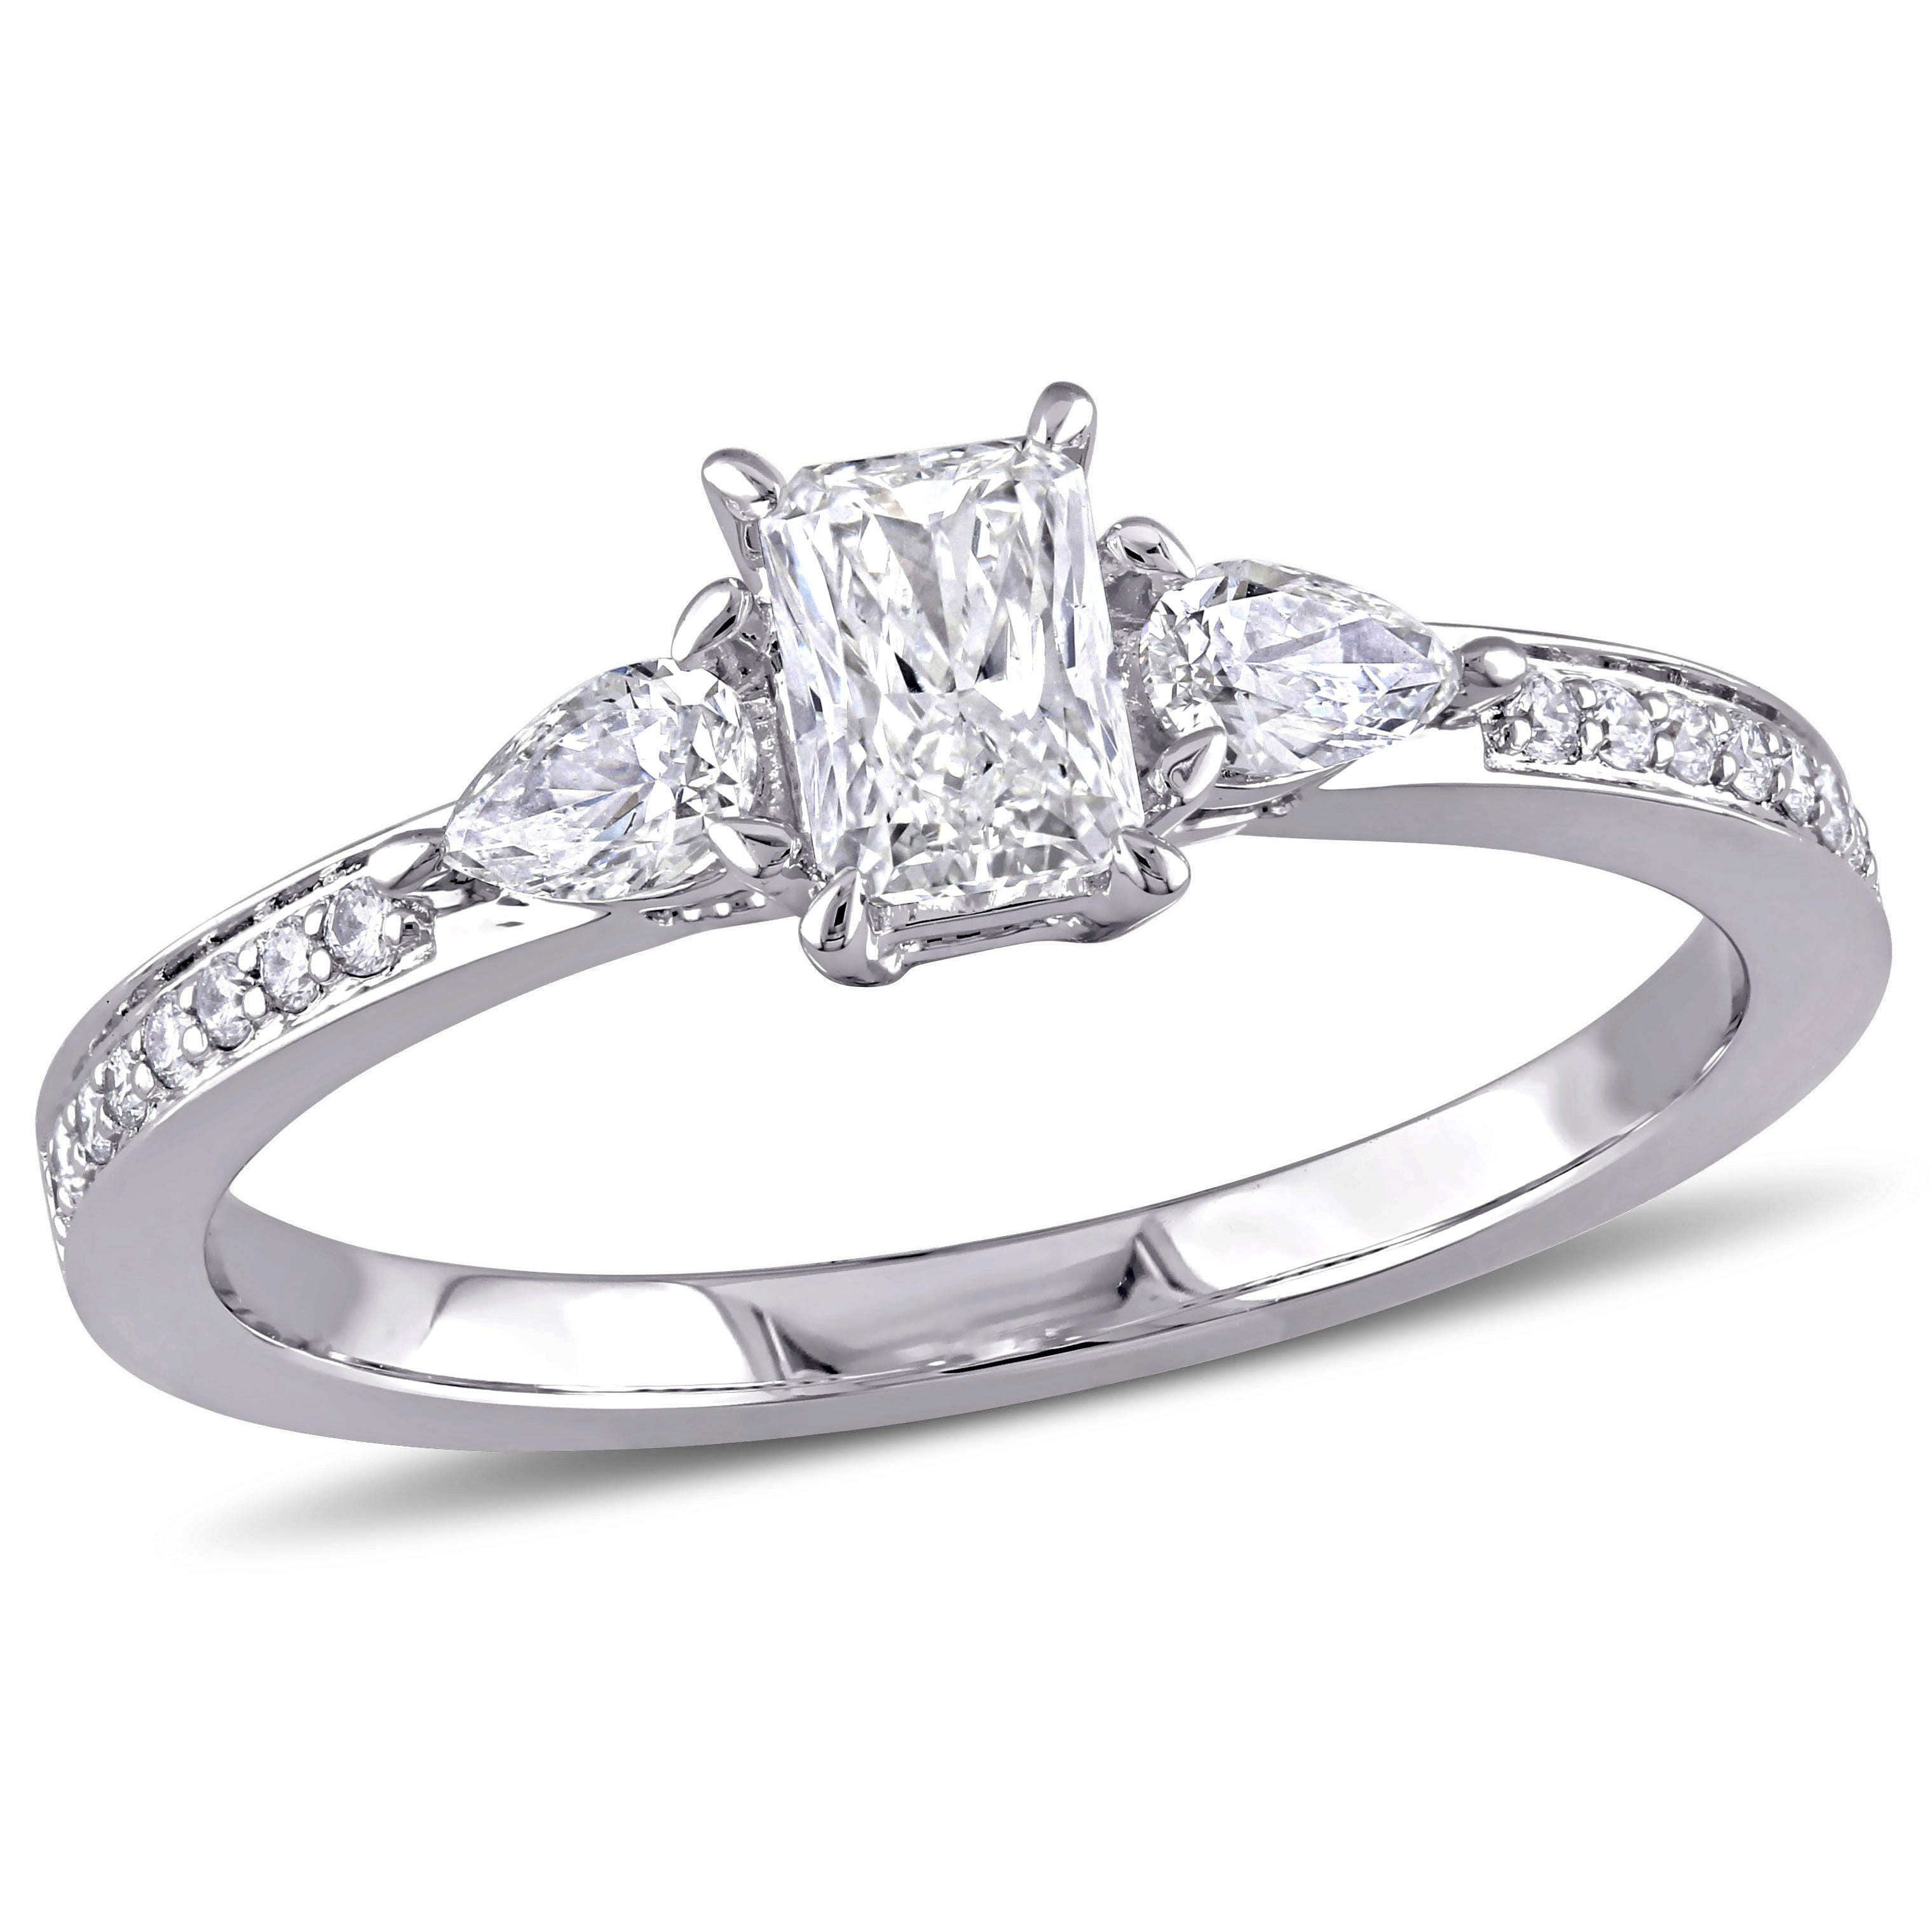 Three-Stone Radiant & Pear 5/8ctw. Diamond Engagement Ring in 14k White Gold